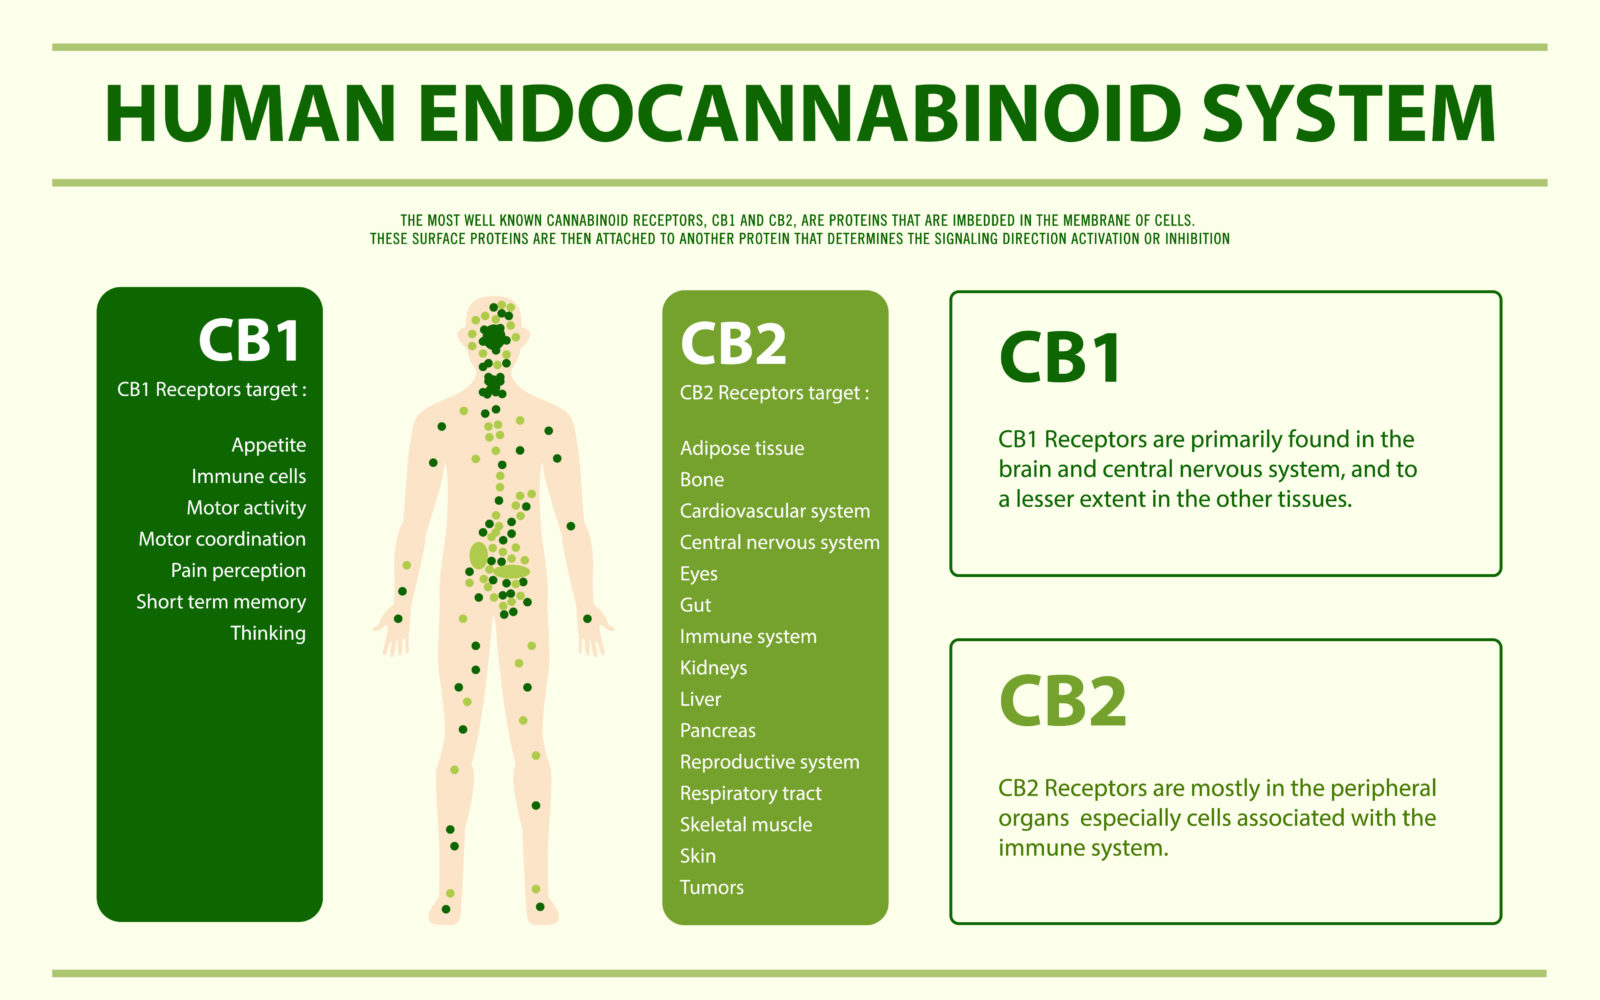 visualizes what is cbd's role in ECS